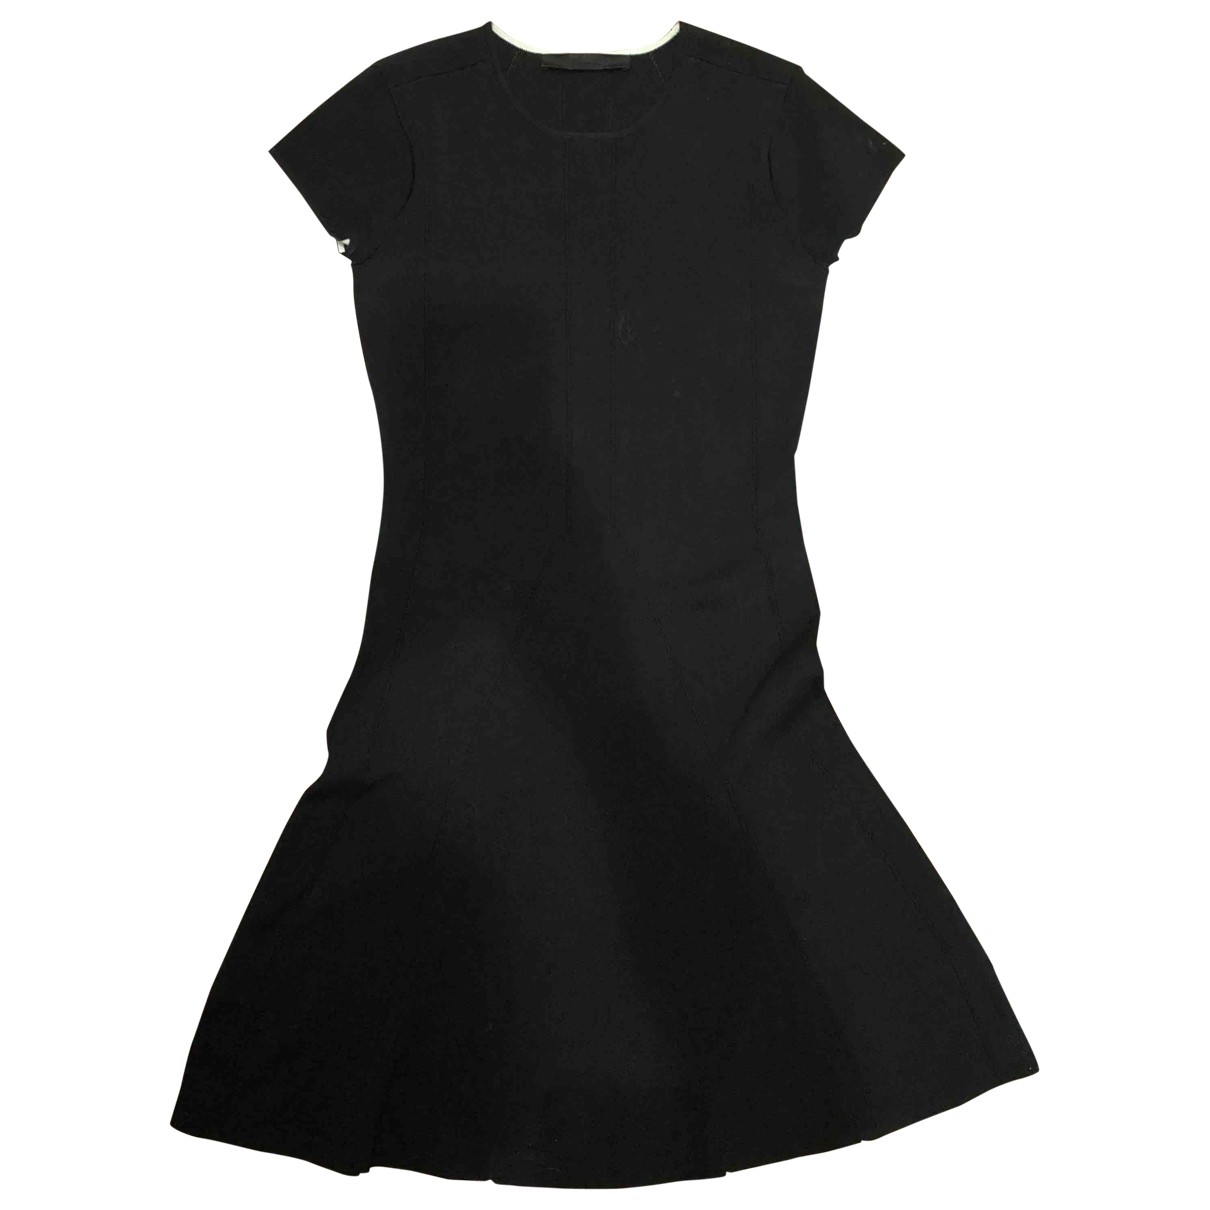 Karl \N Black Cotton - elasthane dress for Women S International